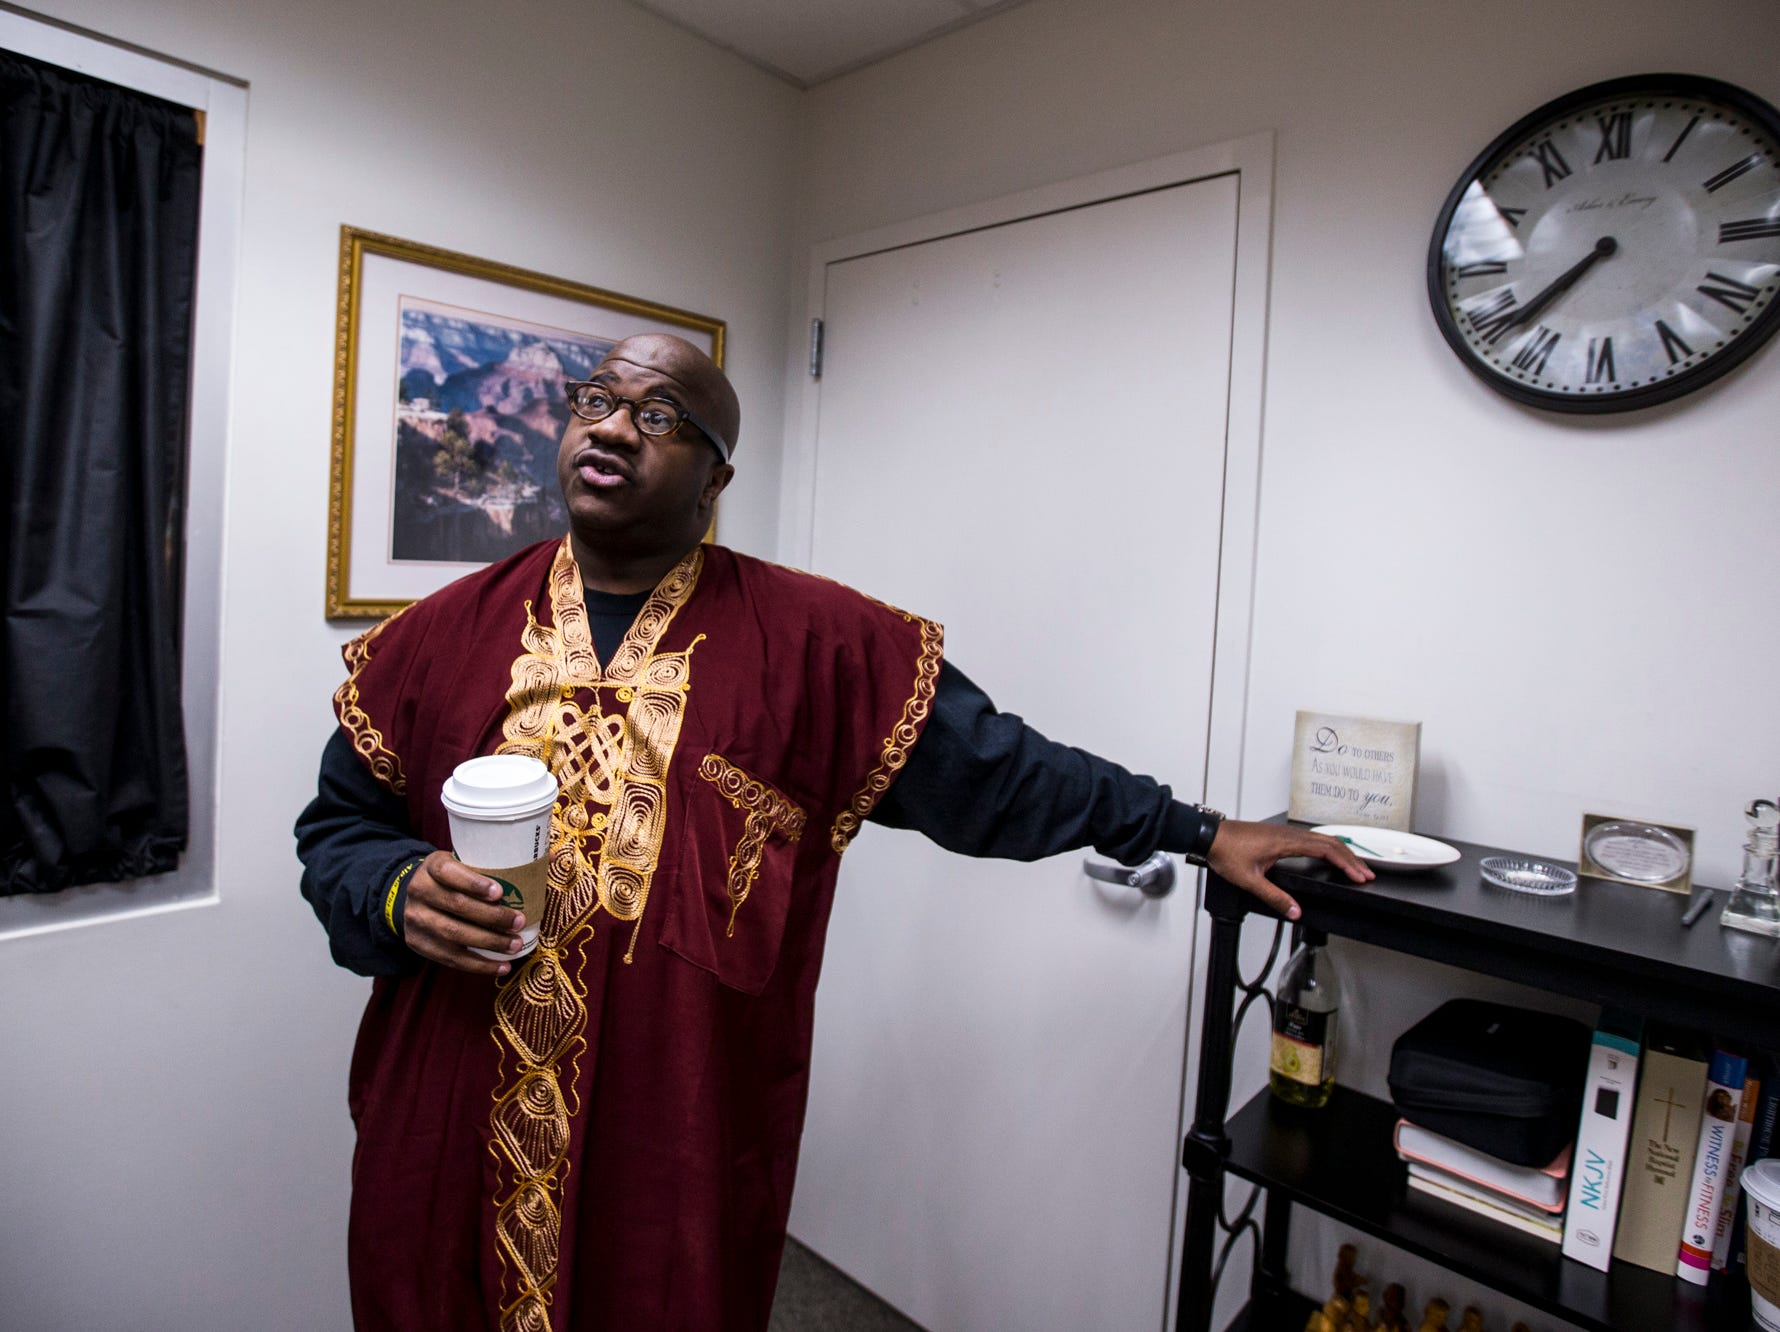 Pastor Terry Mackey prepares for the 7:30 a.m. service in the vestry on Feb. 24, 2019, at Pilgrim Rest Baptist Church in Phoenix. Mackey was appointed to replace the late Bishop Alexis Thomas.